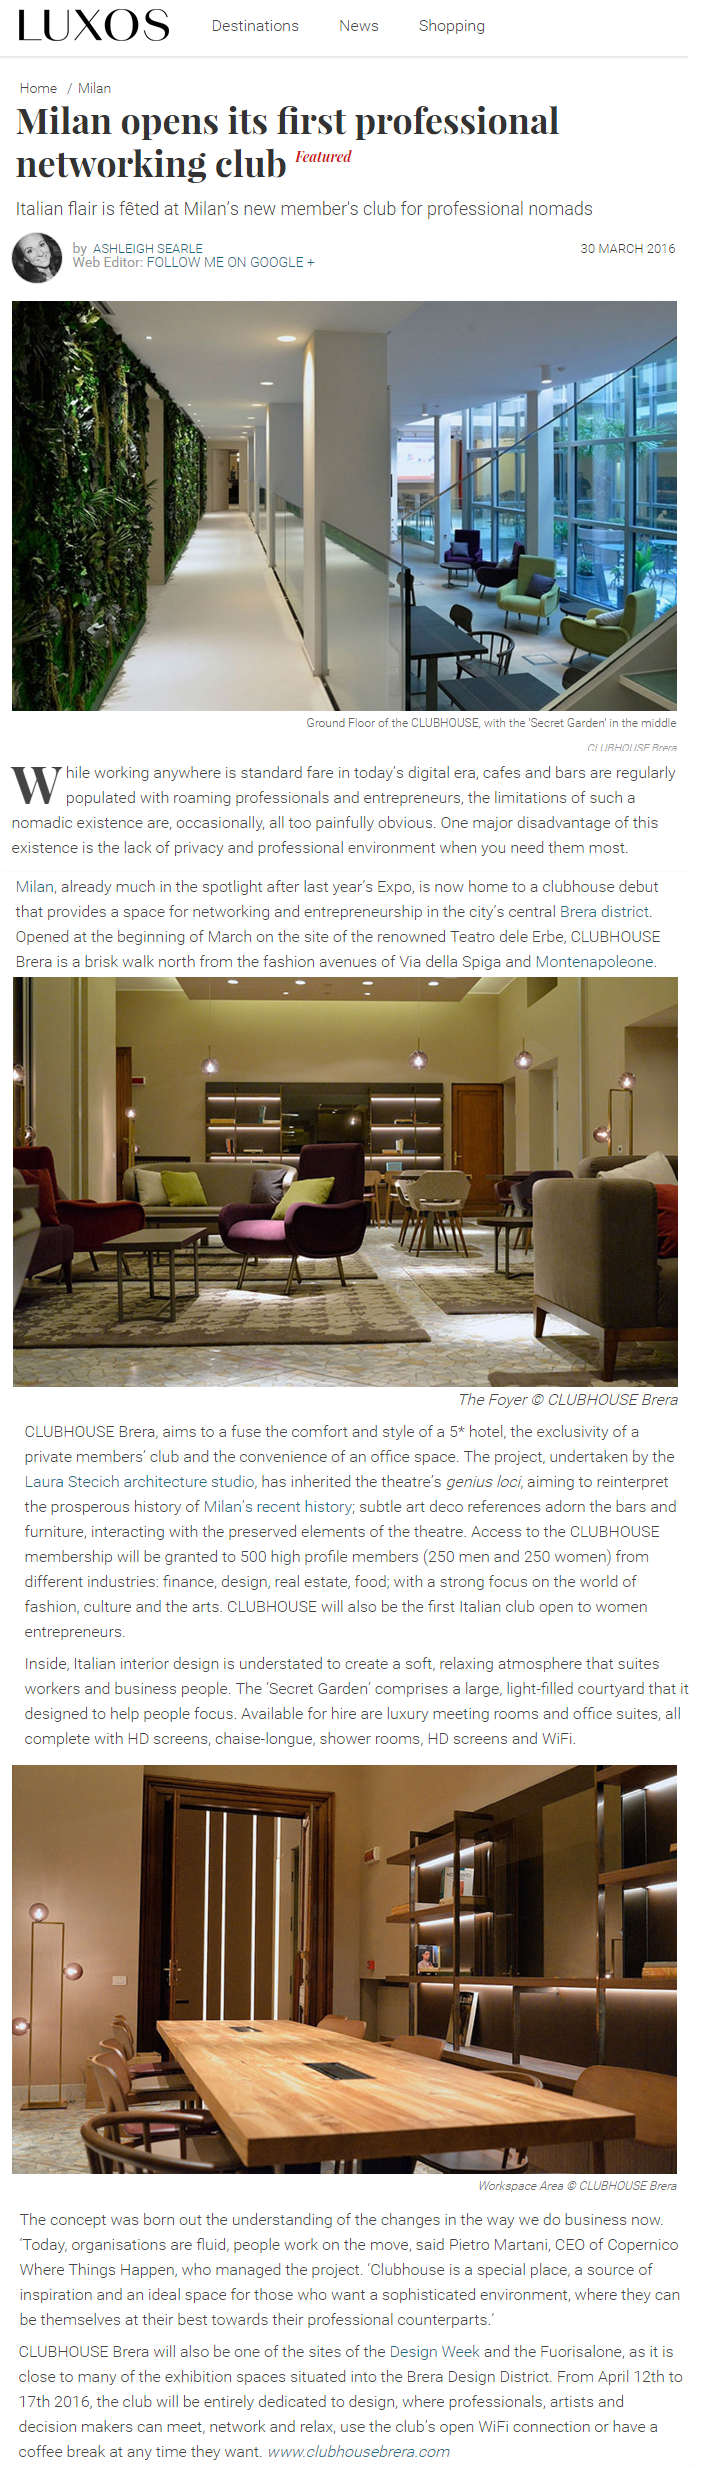 Luxos about Clubhouse Brera